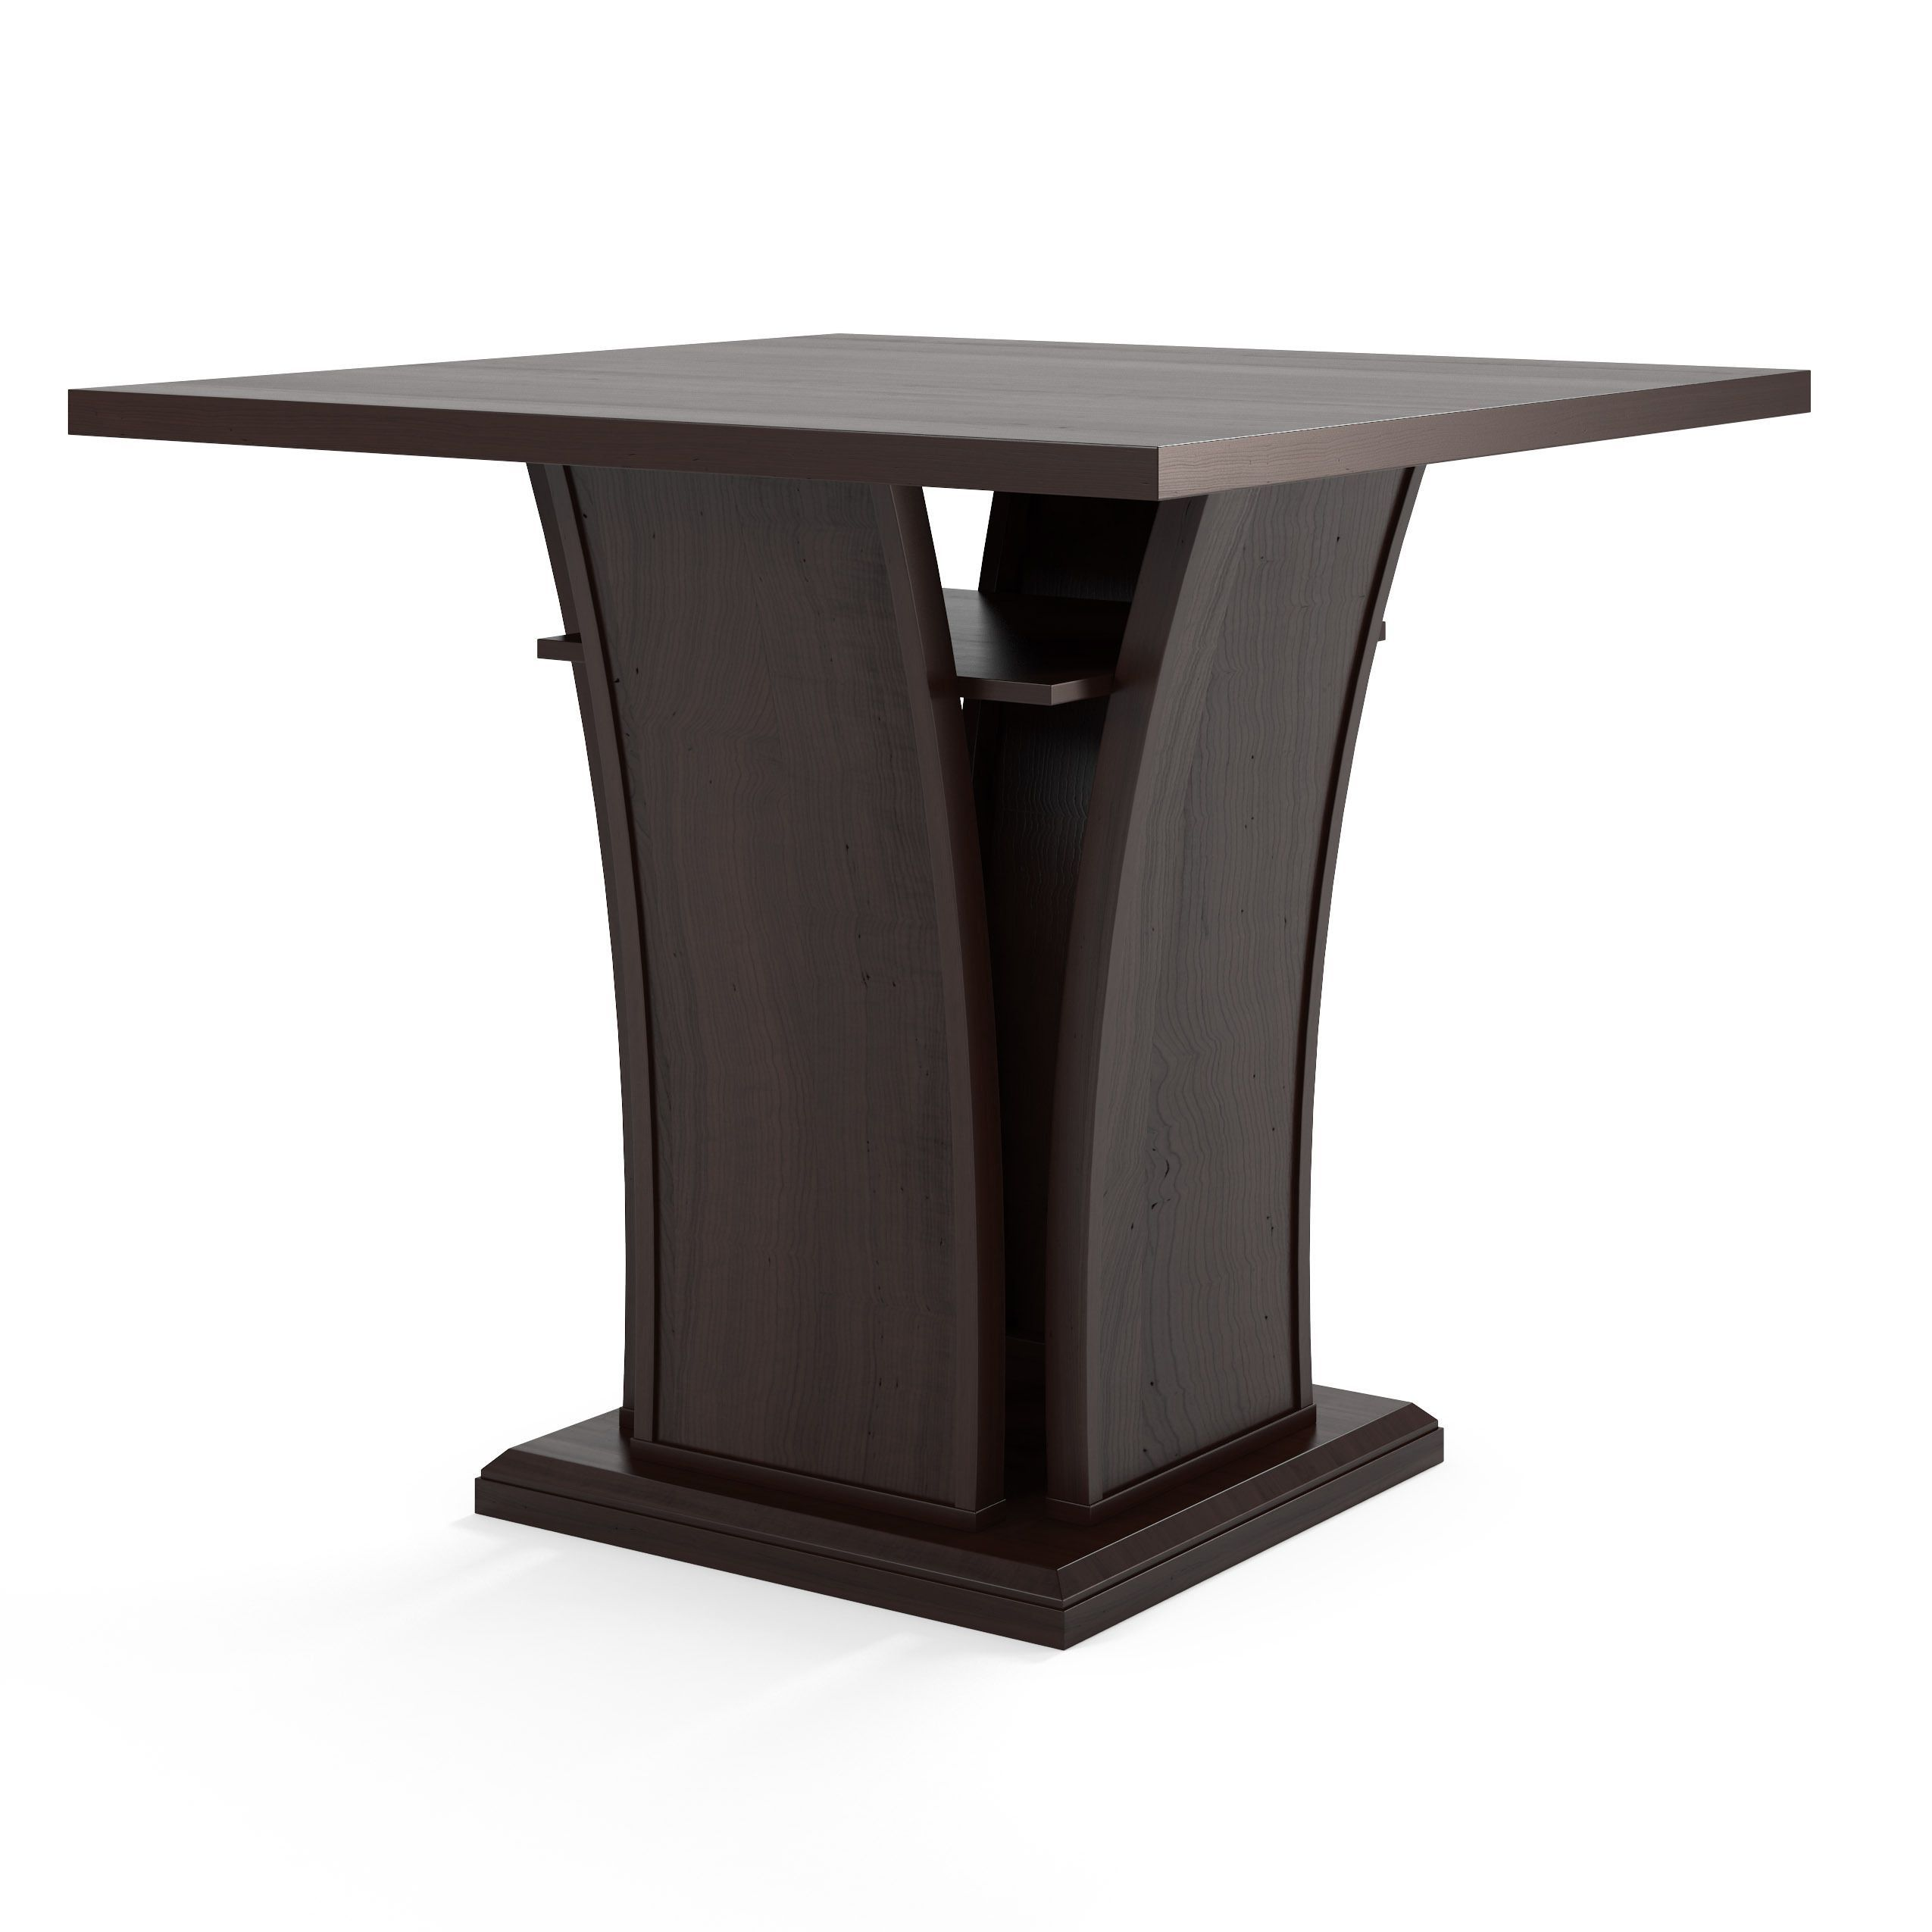 CorLiving Bistro Counter Height Cappuccino Dining Table with Curved